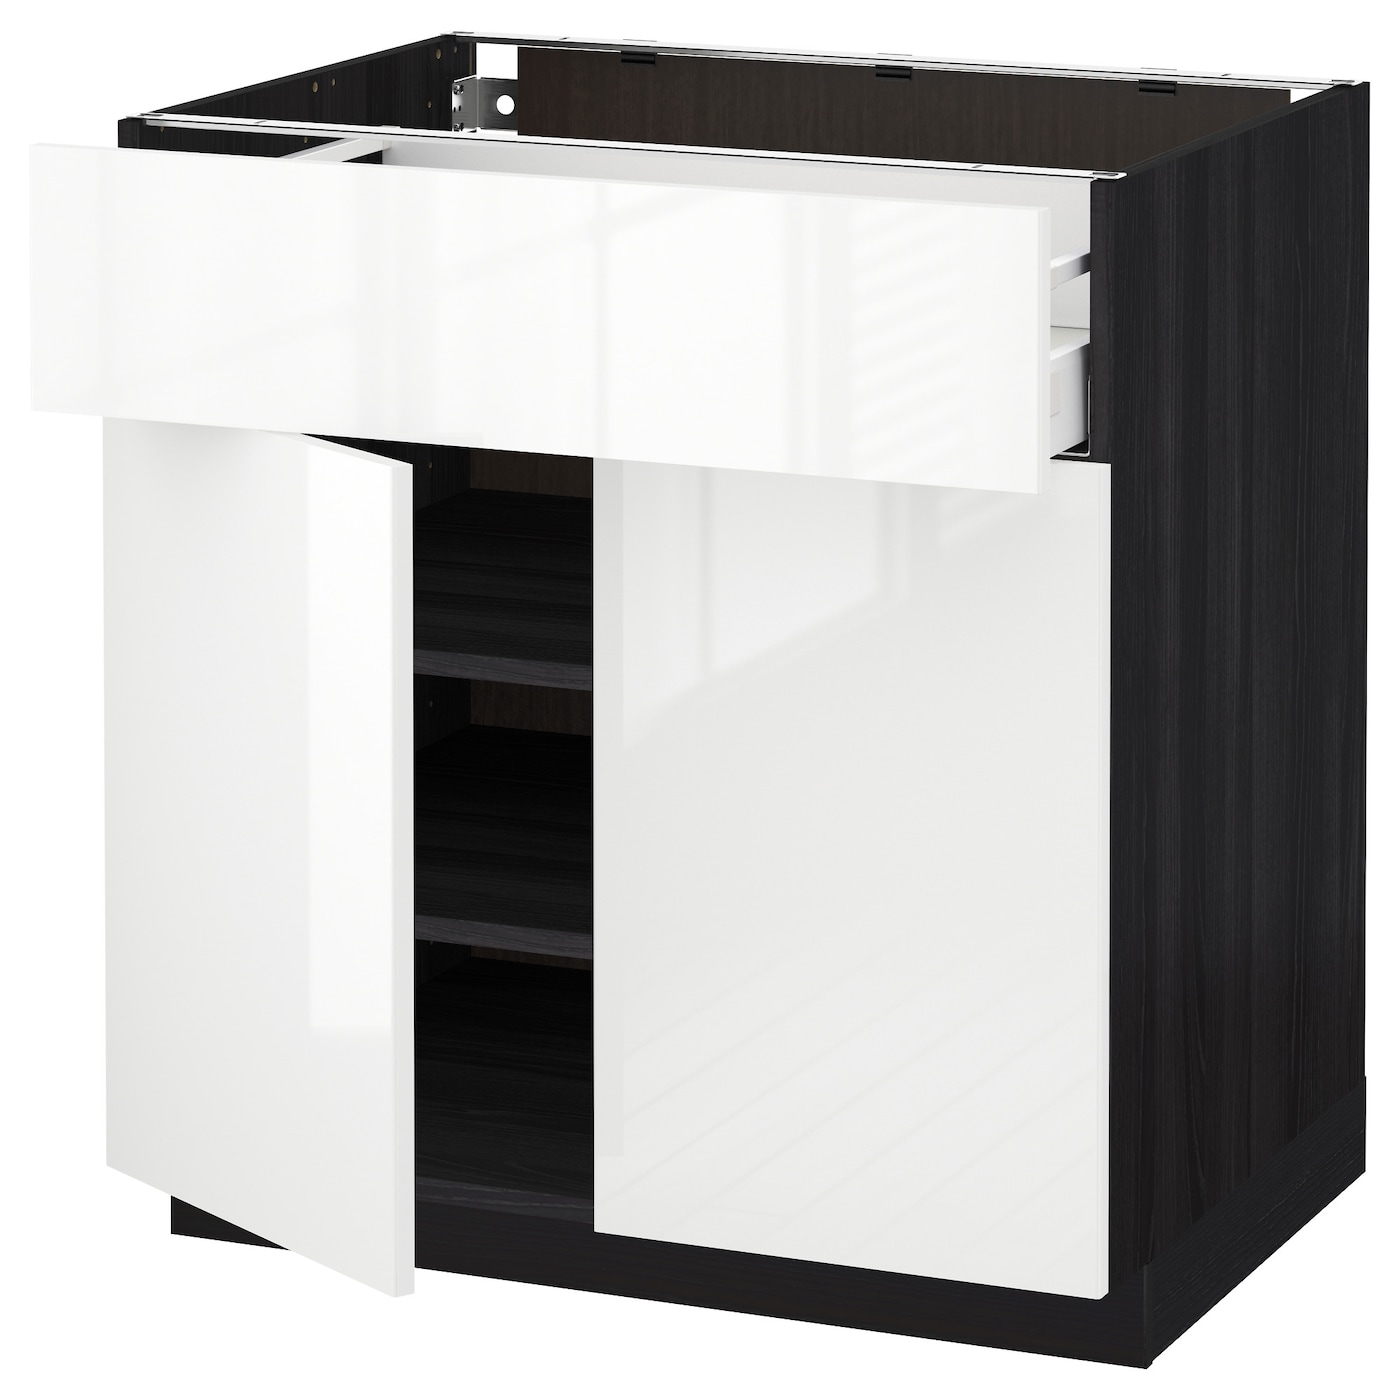 Ringhult Door High Gloss White 60 X 80 Cm: METOD/MAXIMERA Base Cabinet With Drawer/2 Doors Black